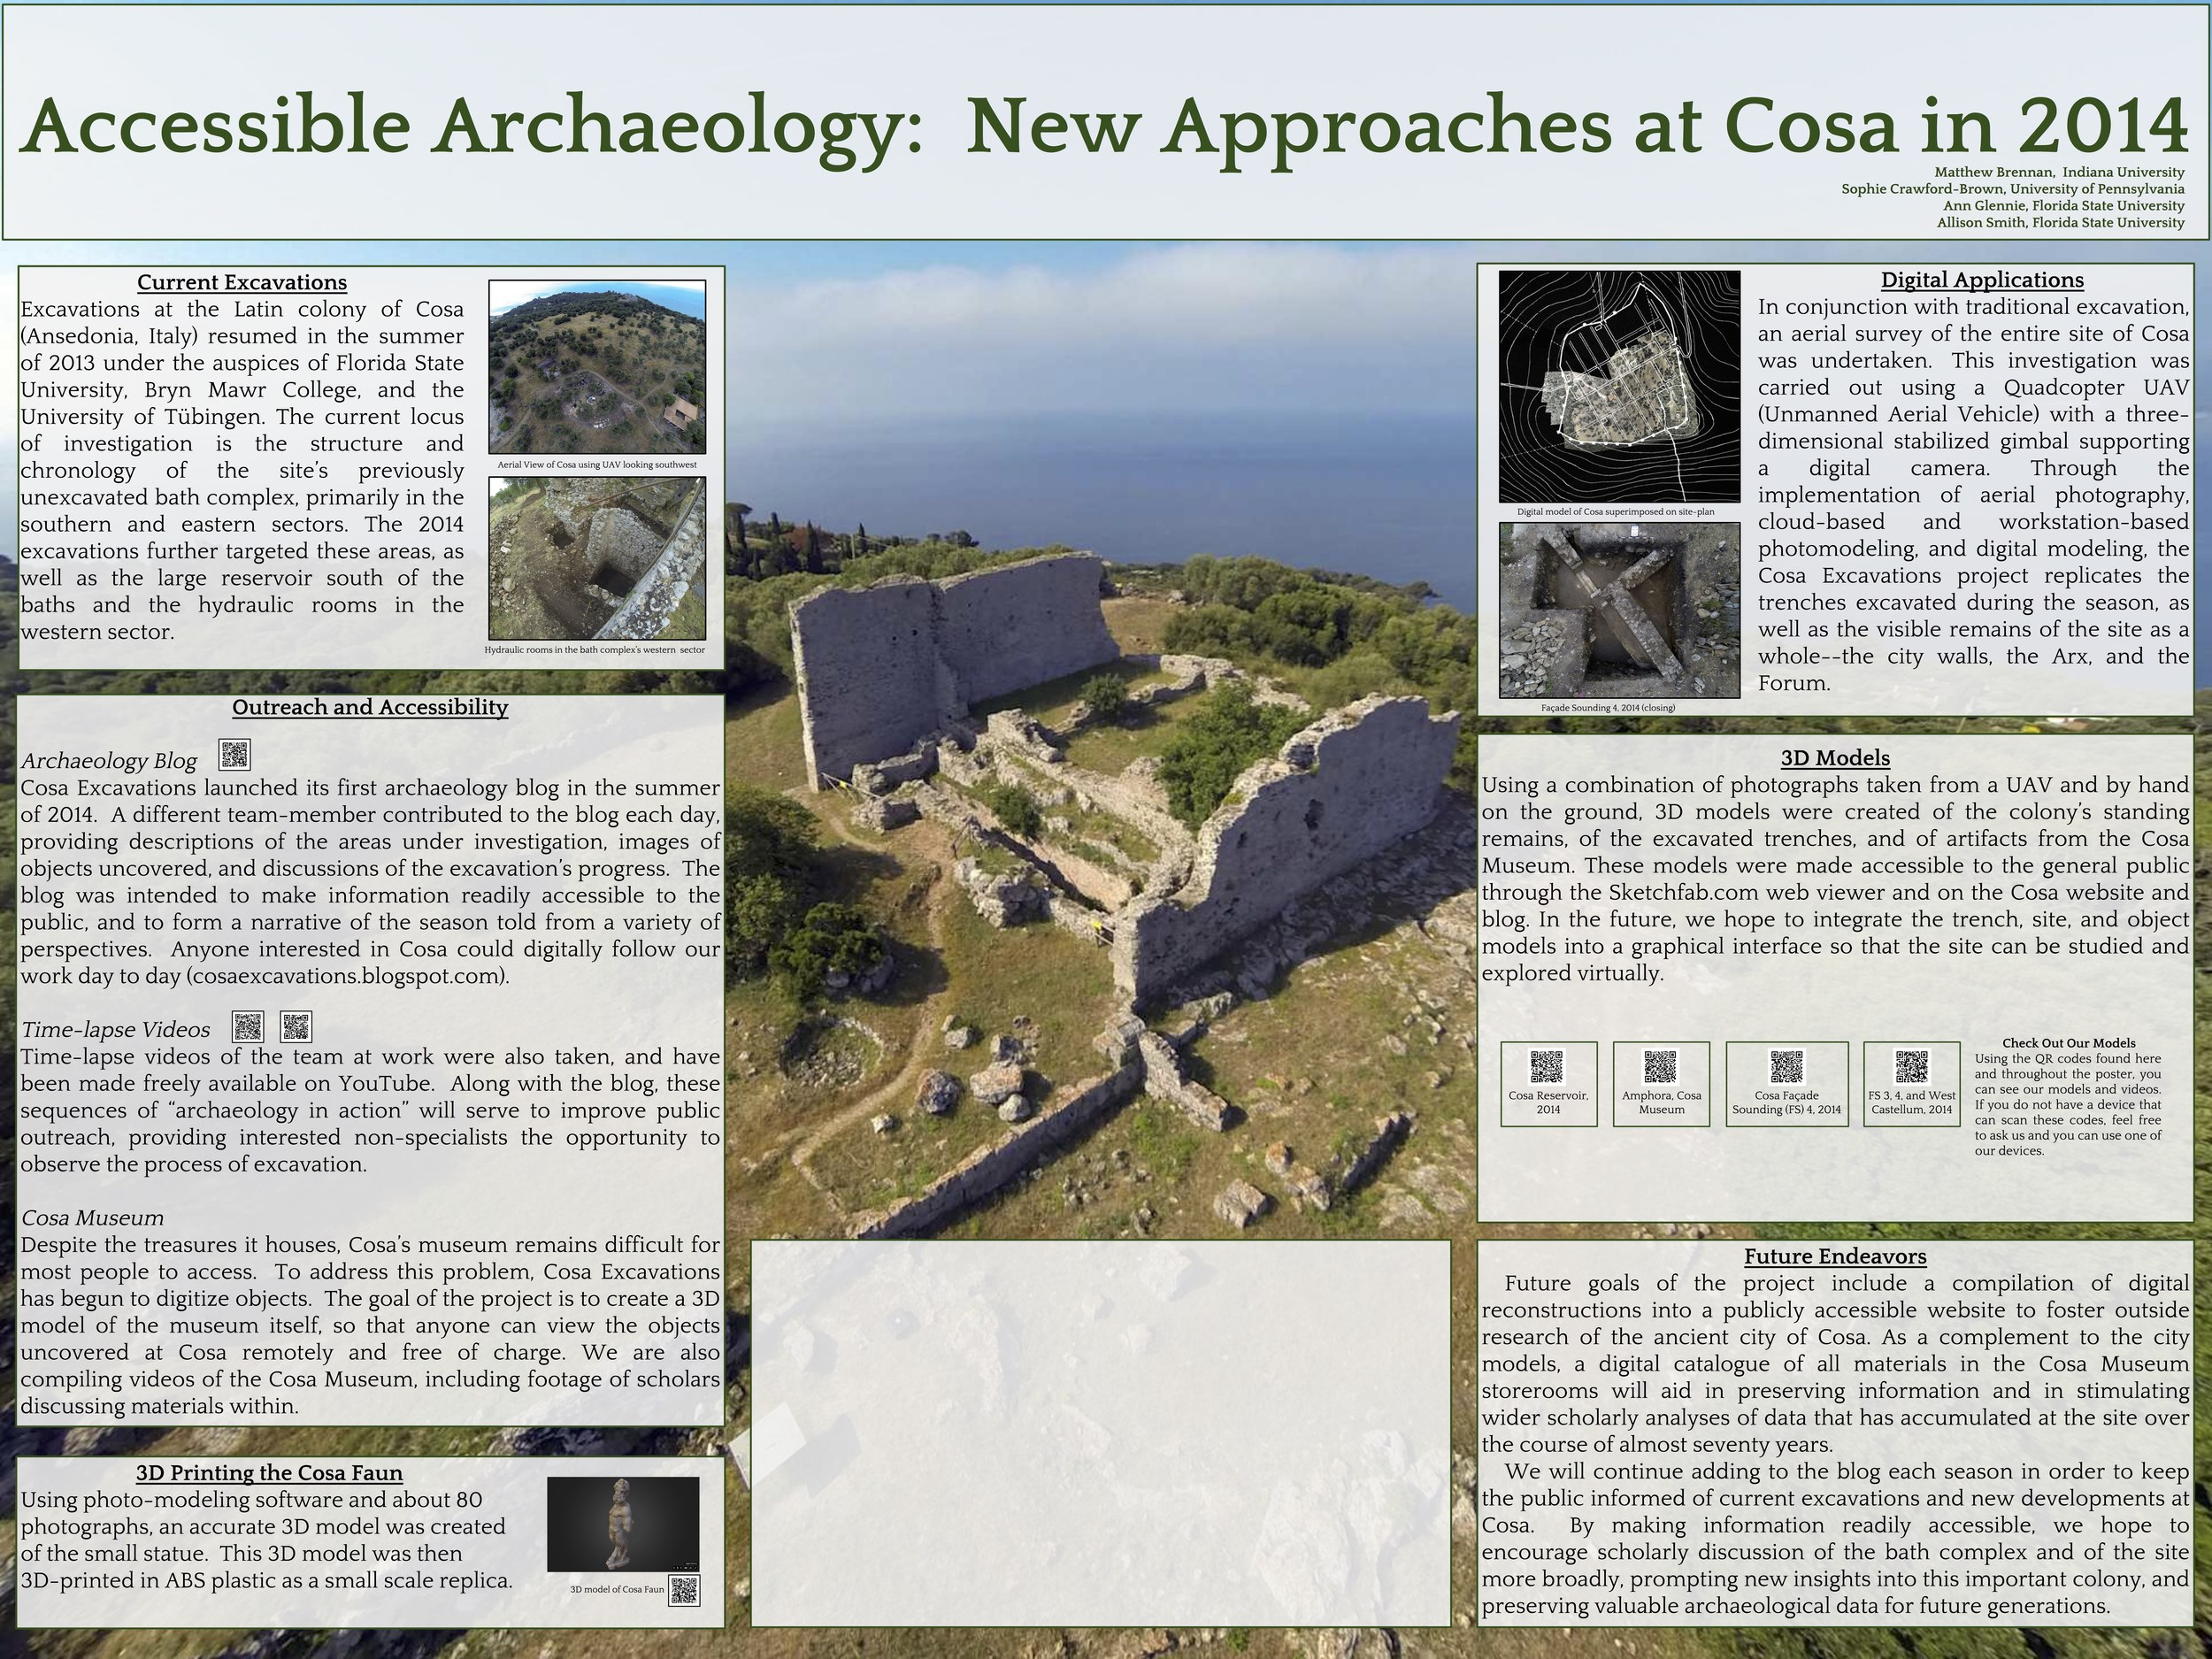 """Poster Presented at the 2015 AIA and SCS Joint Annual Meeting - """"Accessible Archaeology: New Approaches at Cosa in 2014"""""""